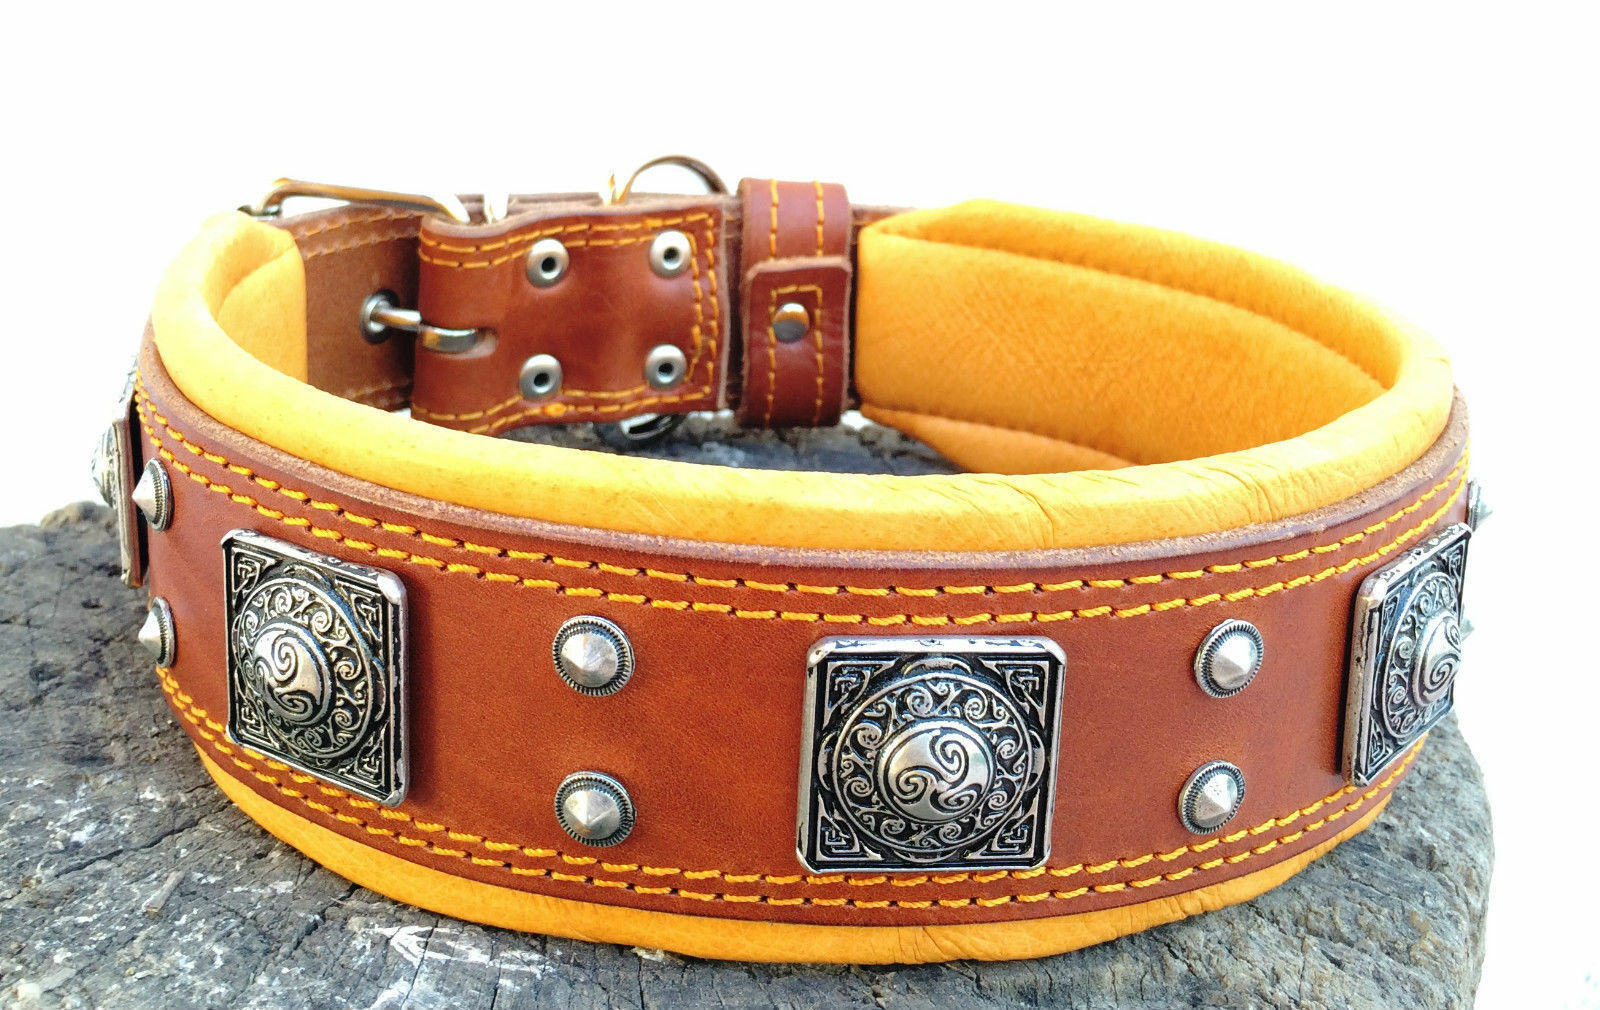 Bestia studded dog collar. 2.5 inch wide. Hand made in Europe. Top quality. XXL